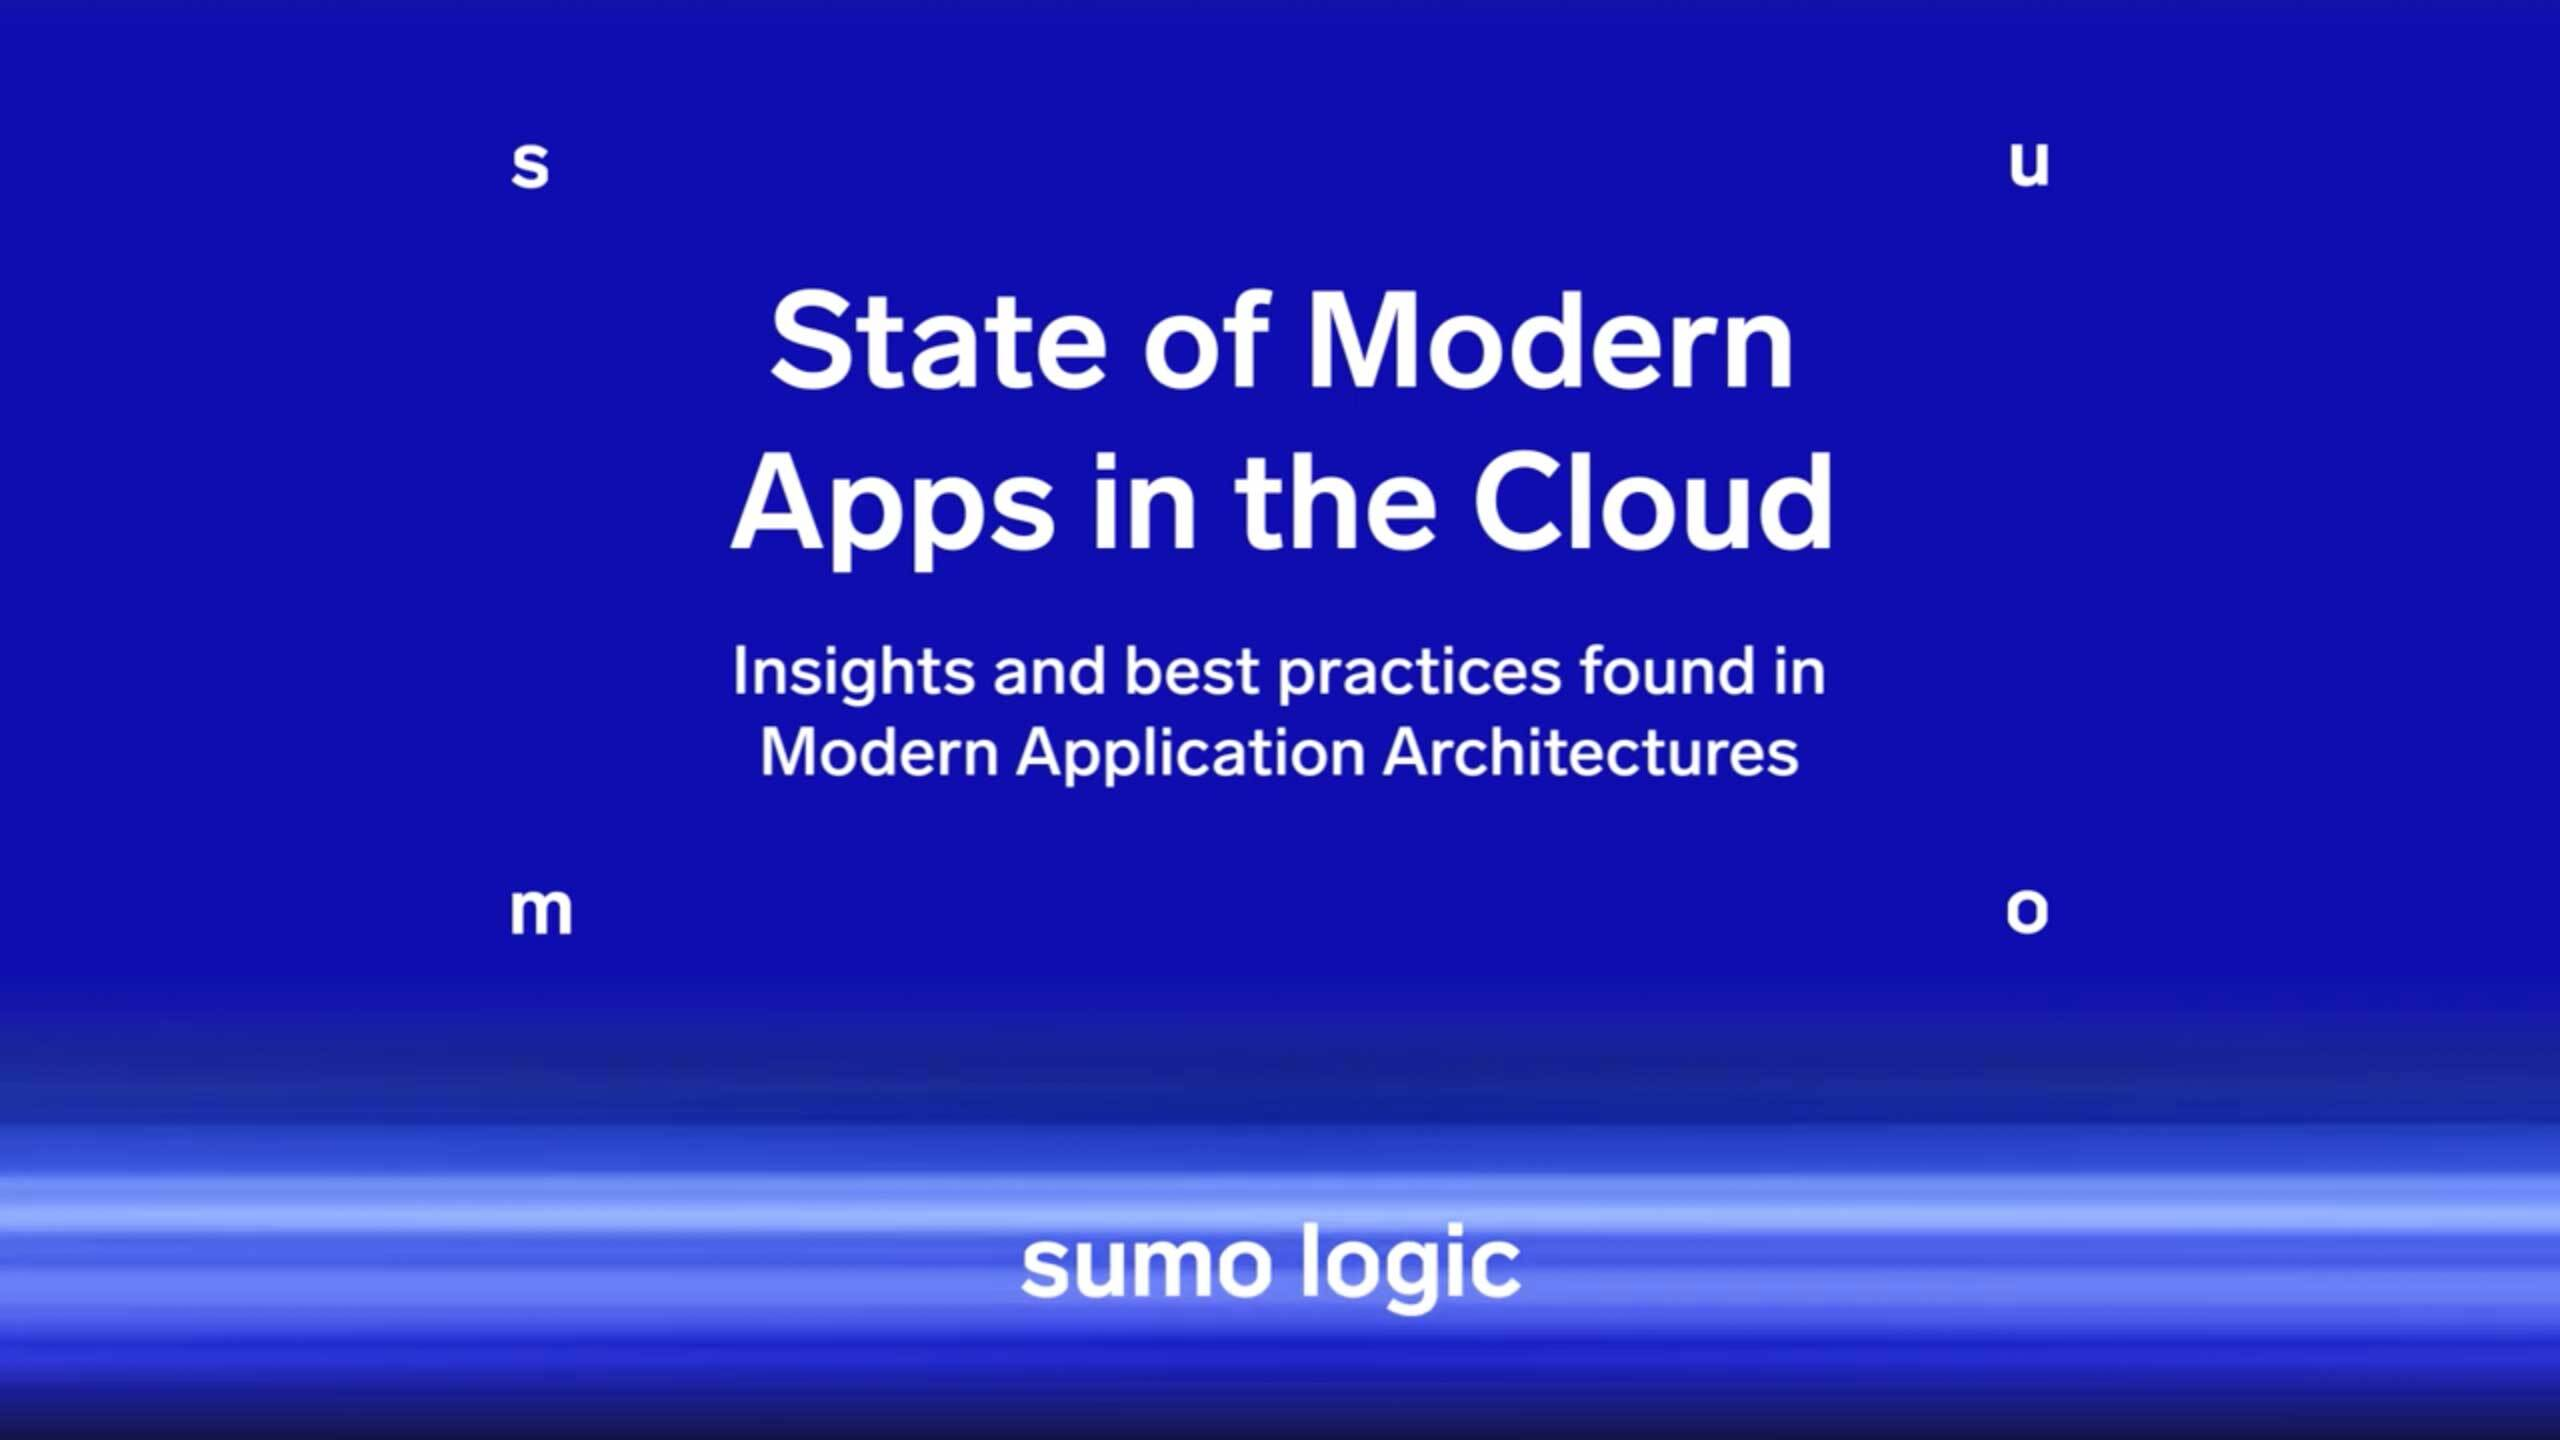 State of Modern Applications 2018